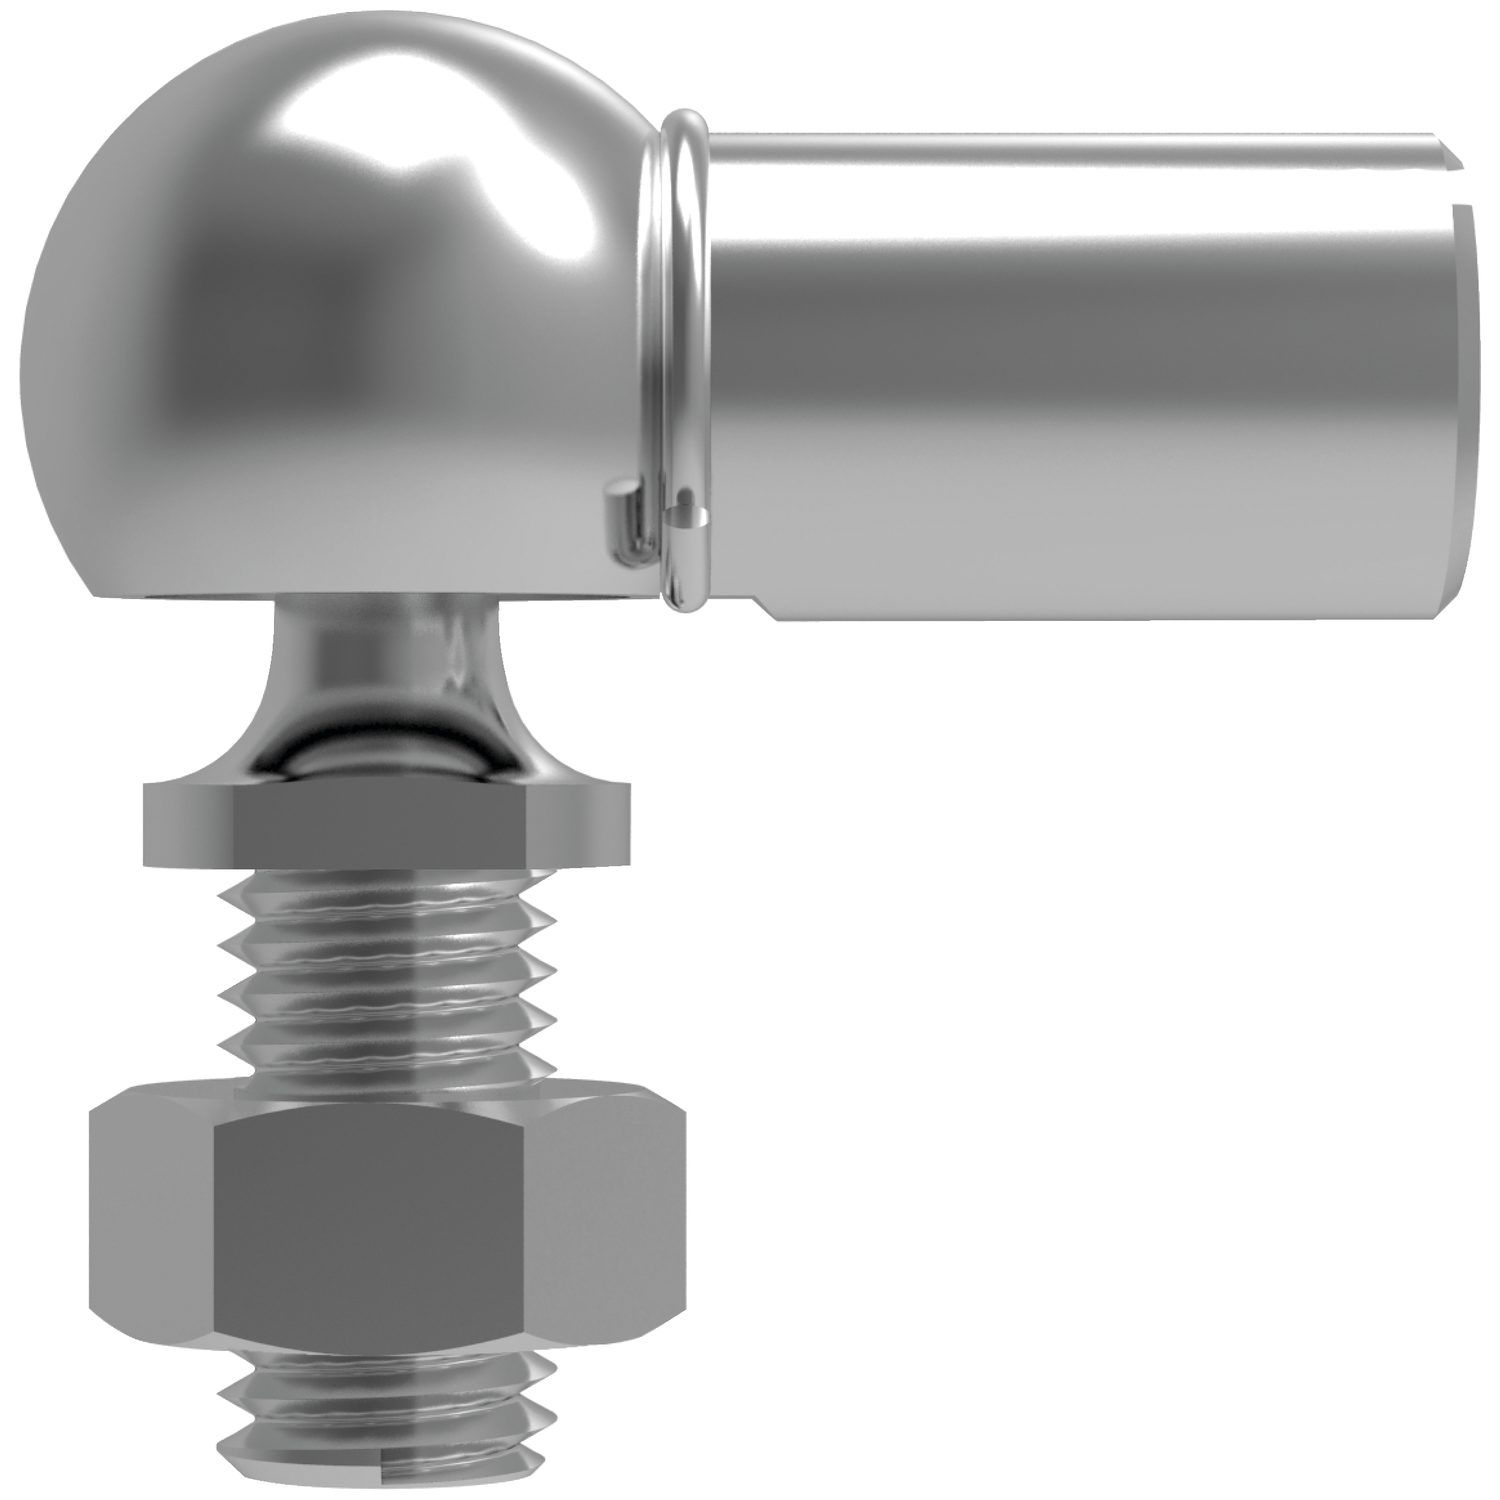 R3468 - Stainless Ball and Socket Joints